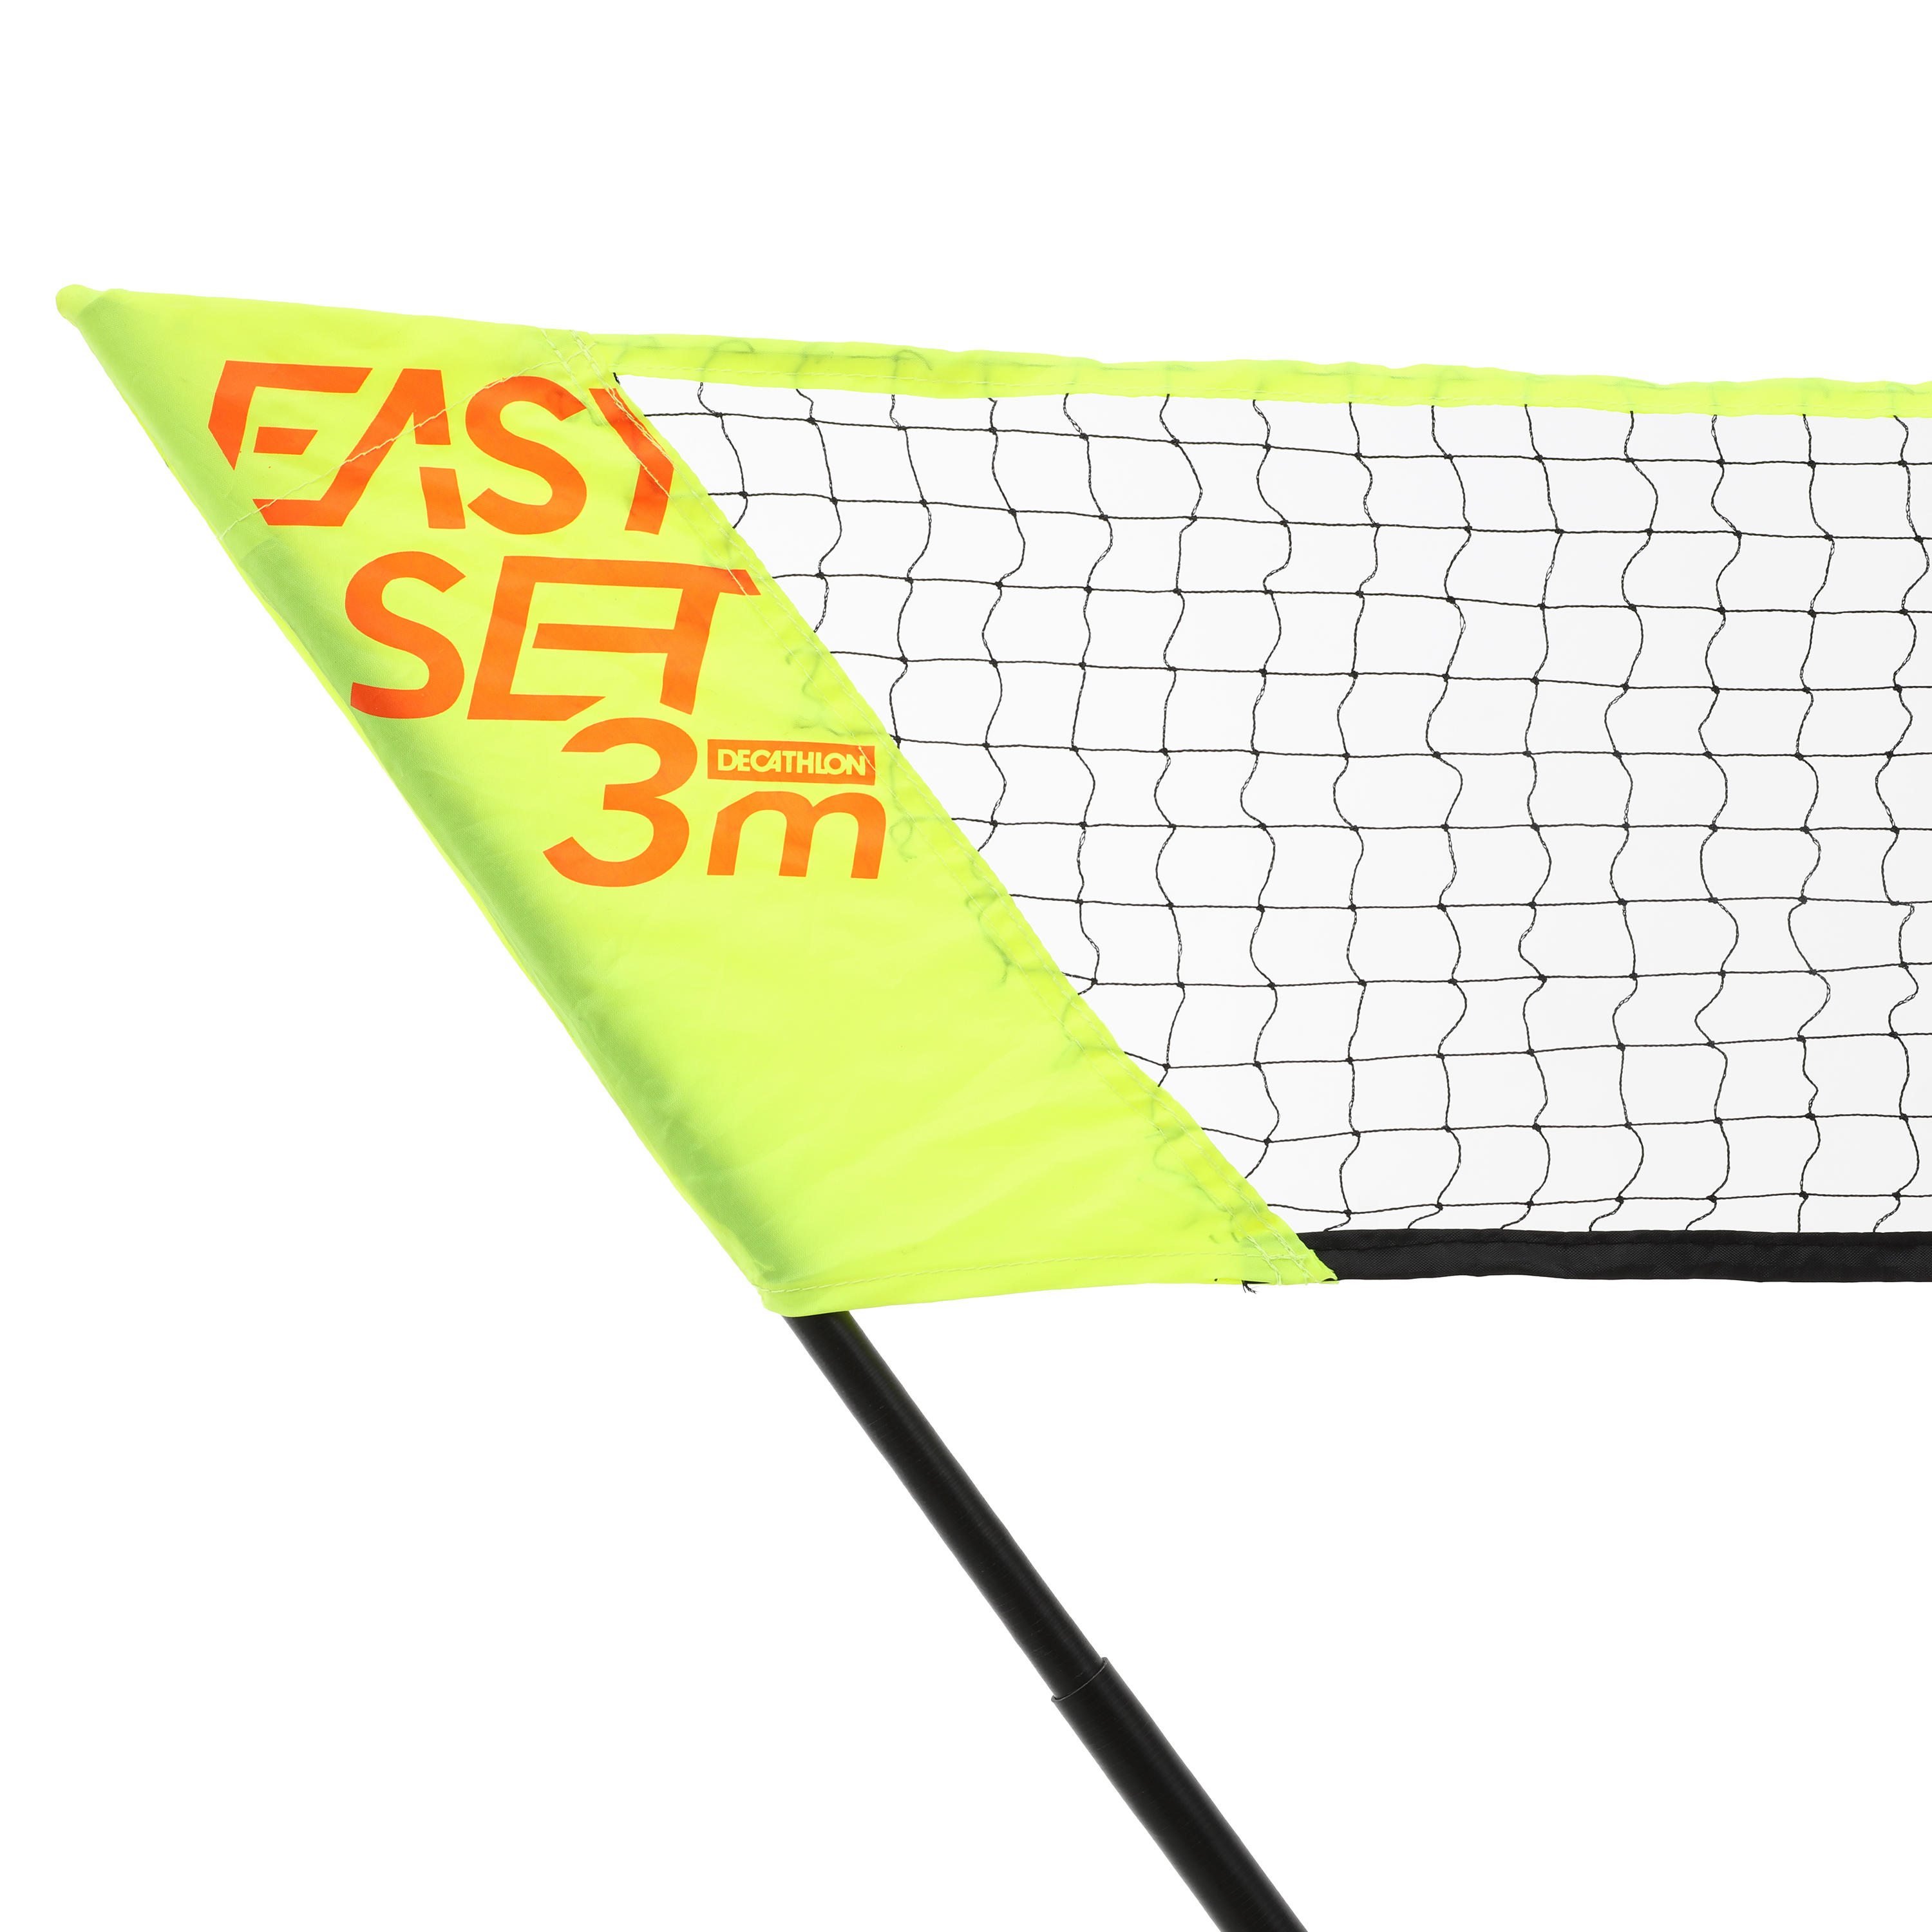 Easy Set 3 m Net and Racket Set - Yellow